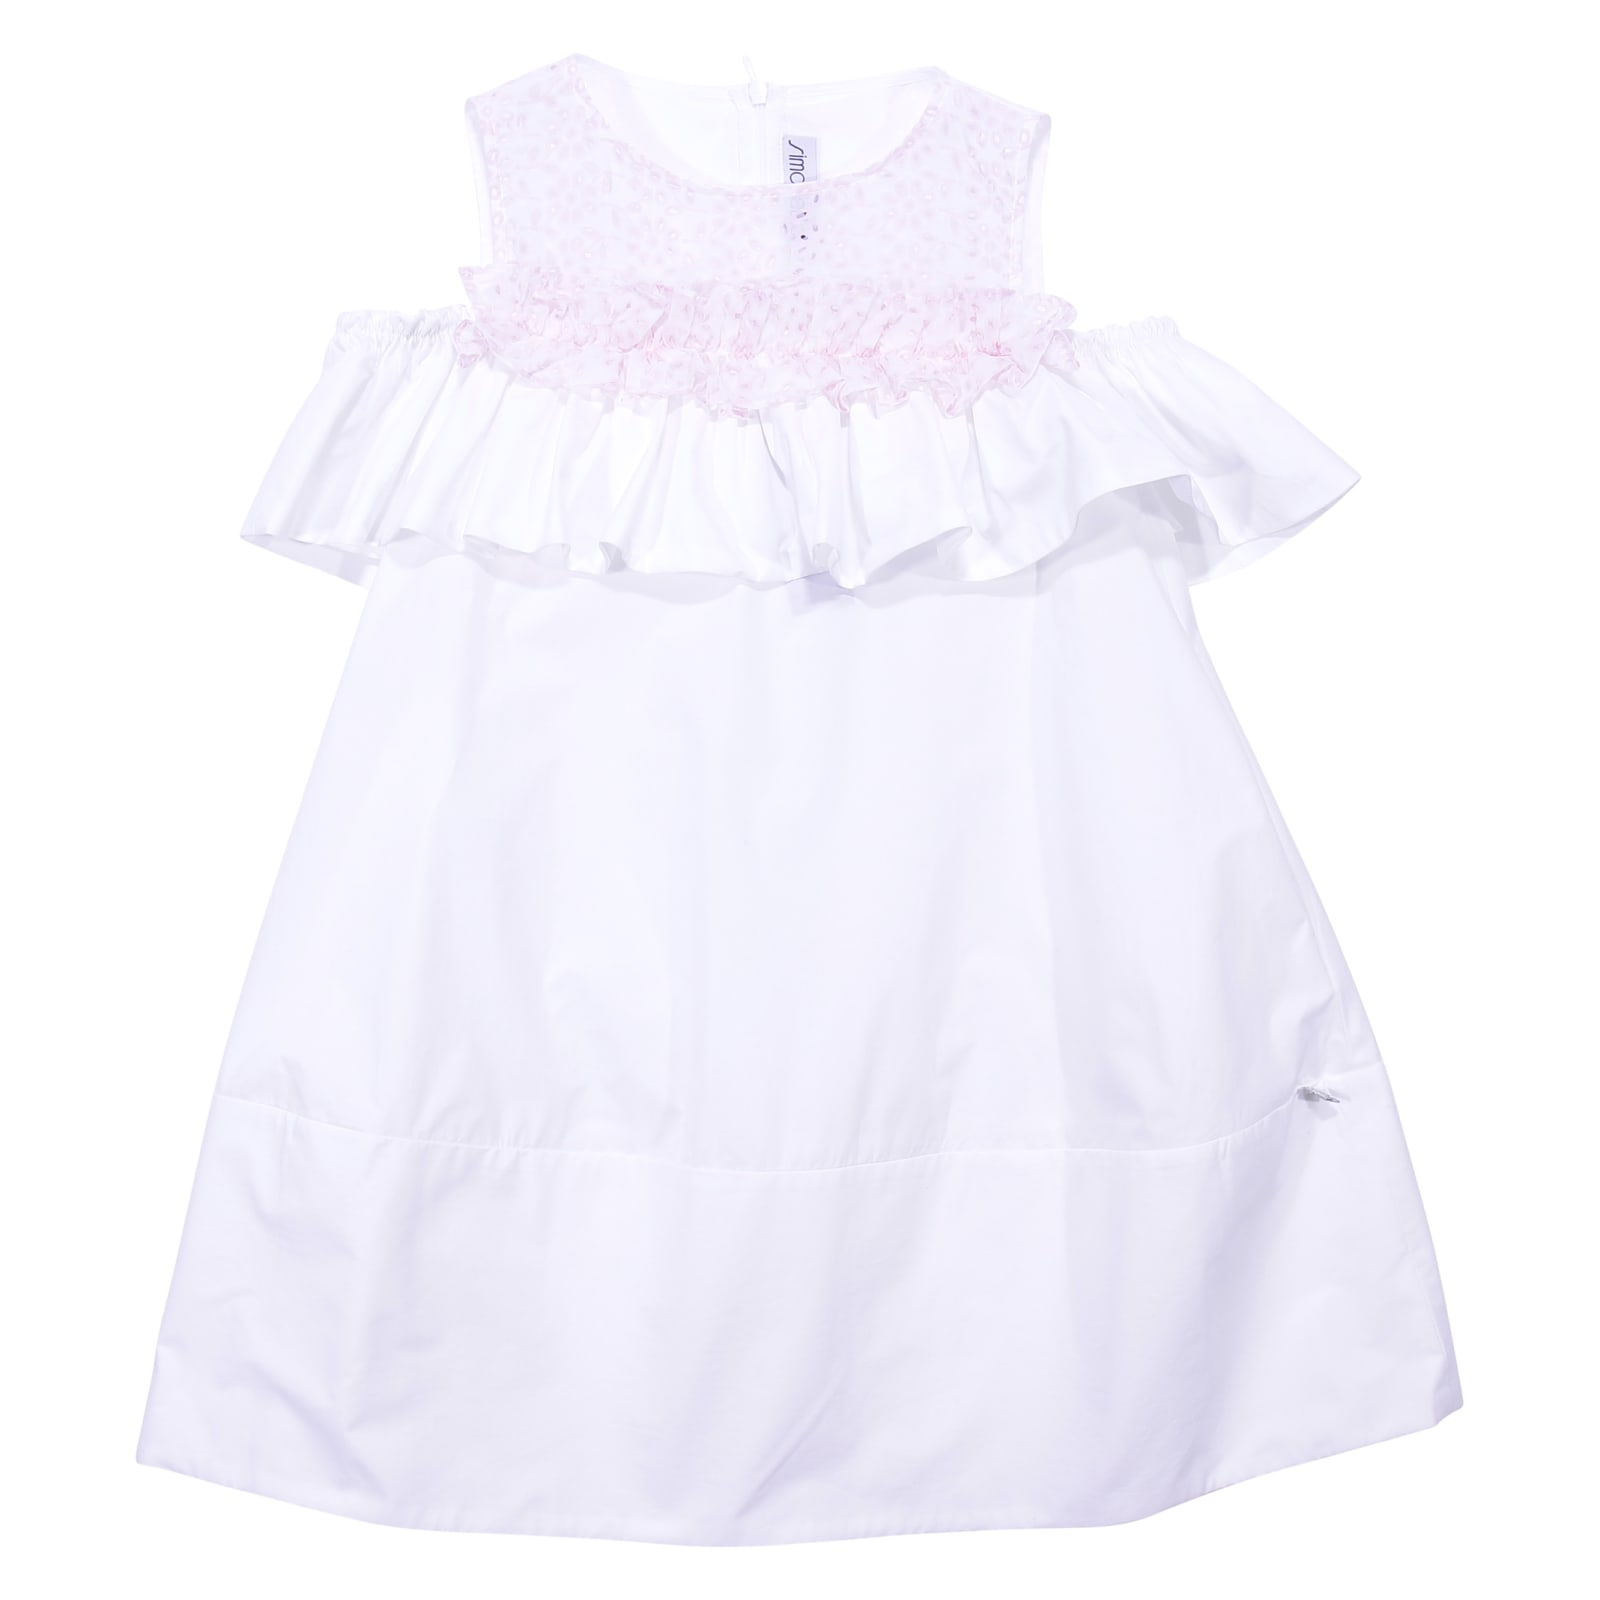 Simonetta White Cotton Poplin Dress